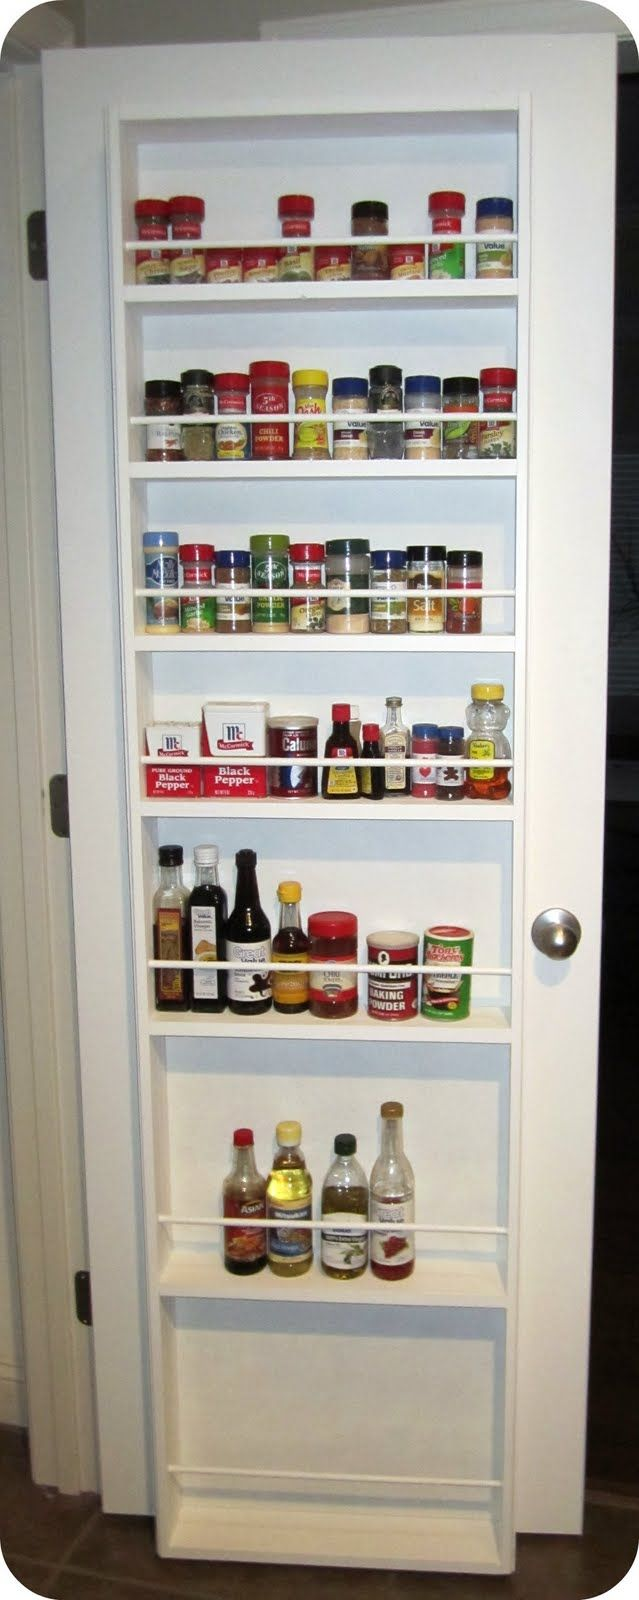 A mom had this on her pantry door since the 70's.....very neat way to find spices and small jars/cans of things....